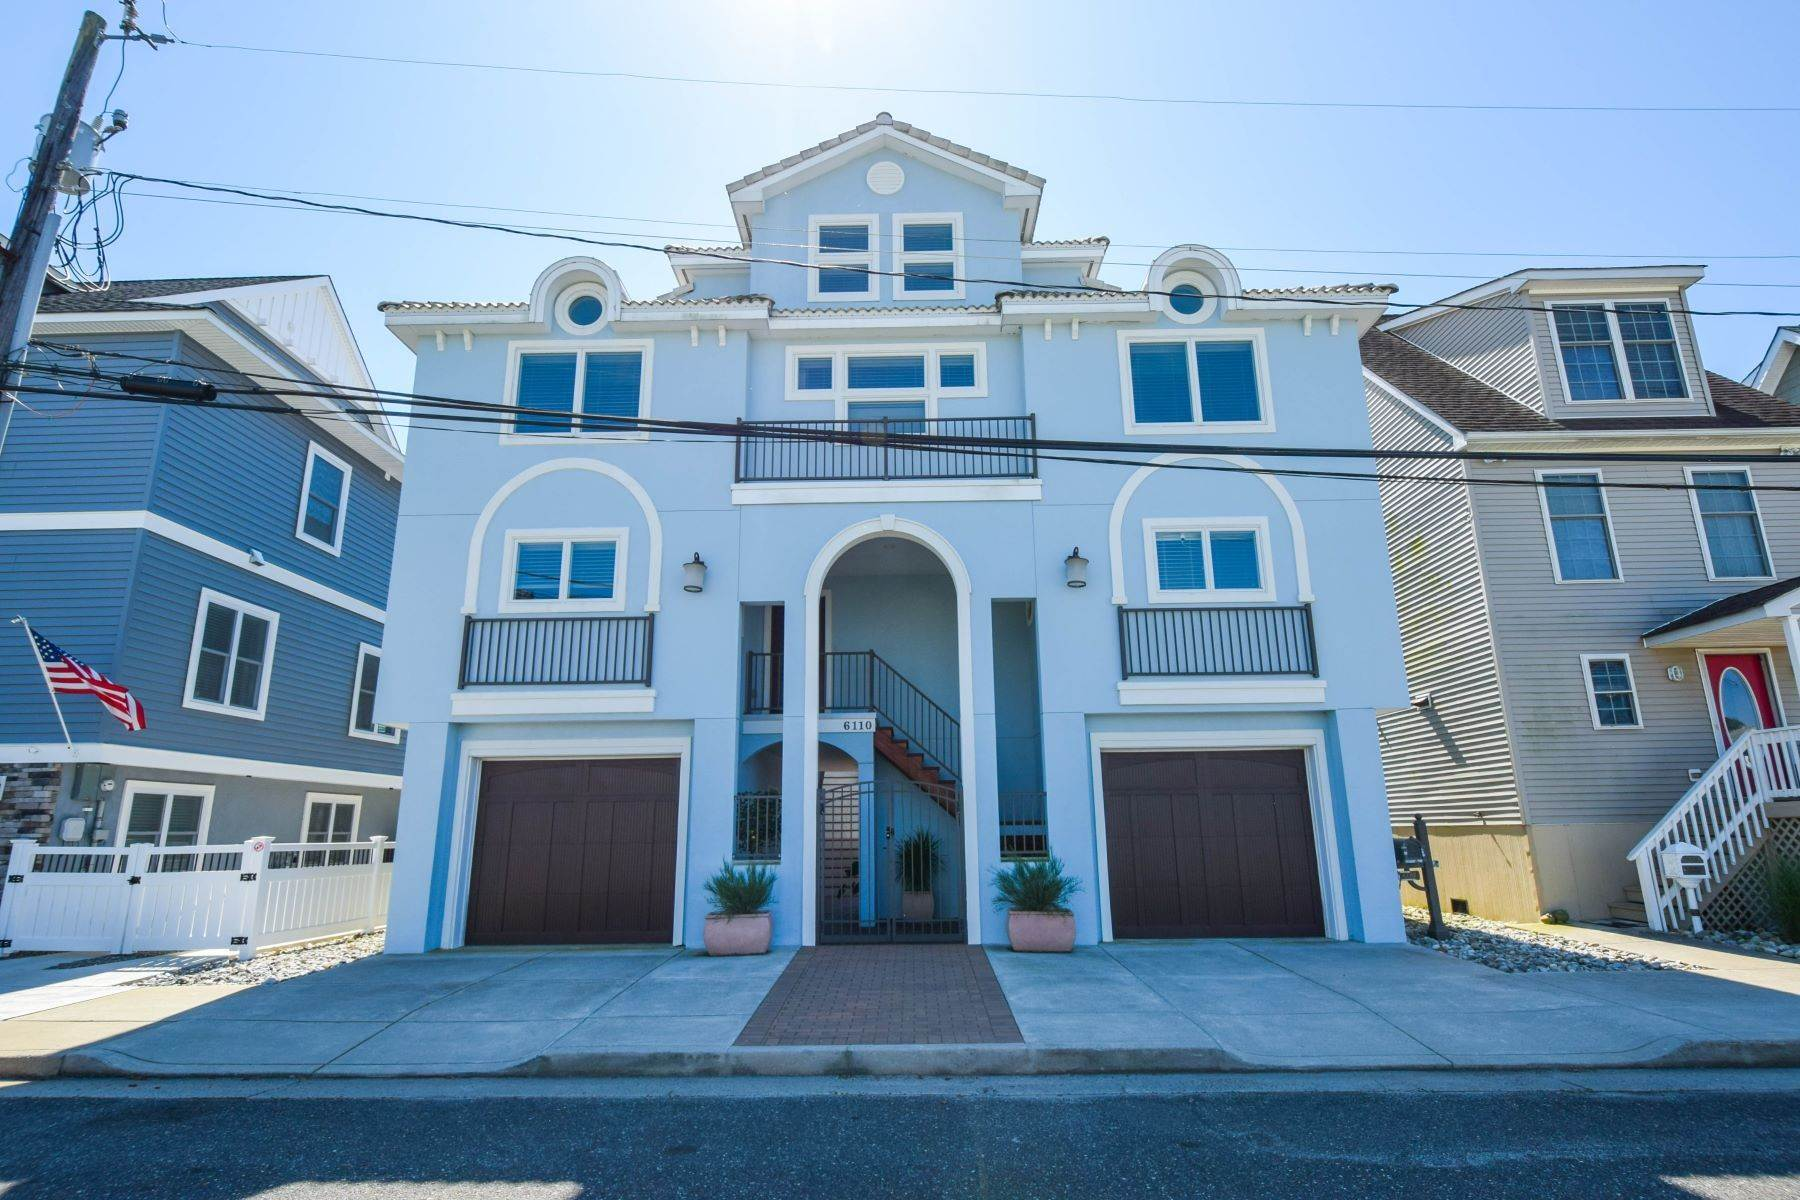 Property for Sale at 6110 Calvert Ave Ventnor, New Jersey 08406 United States